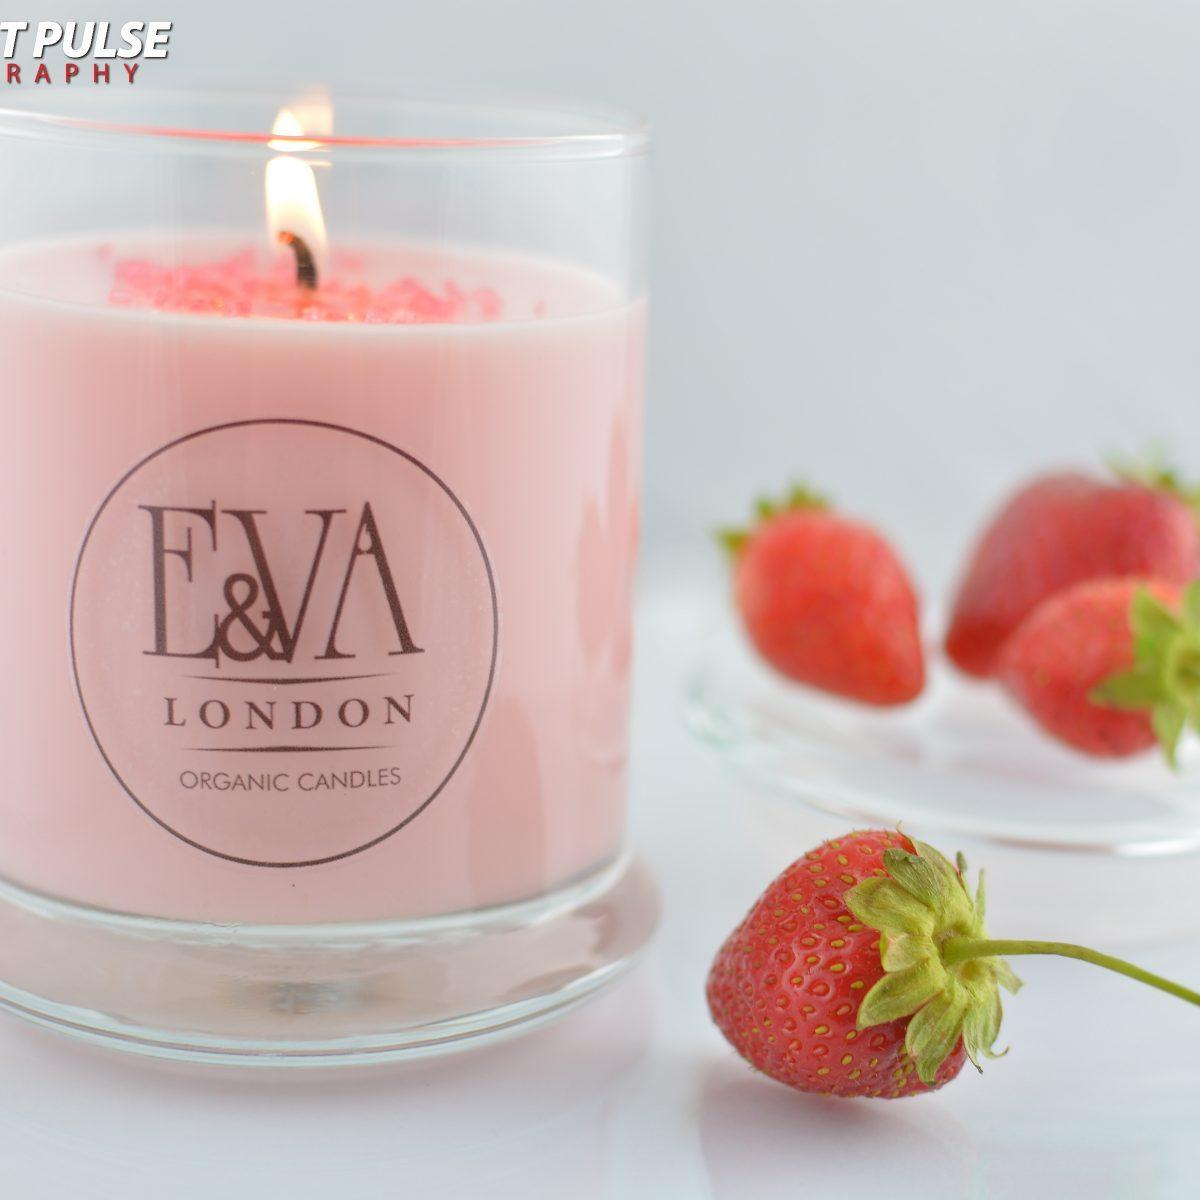 Product photography services in London